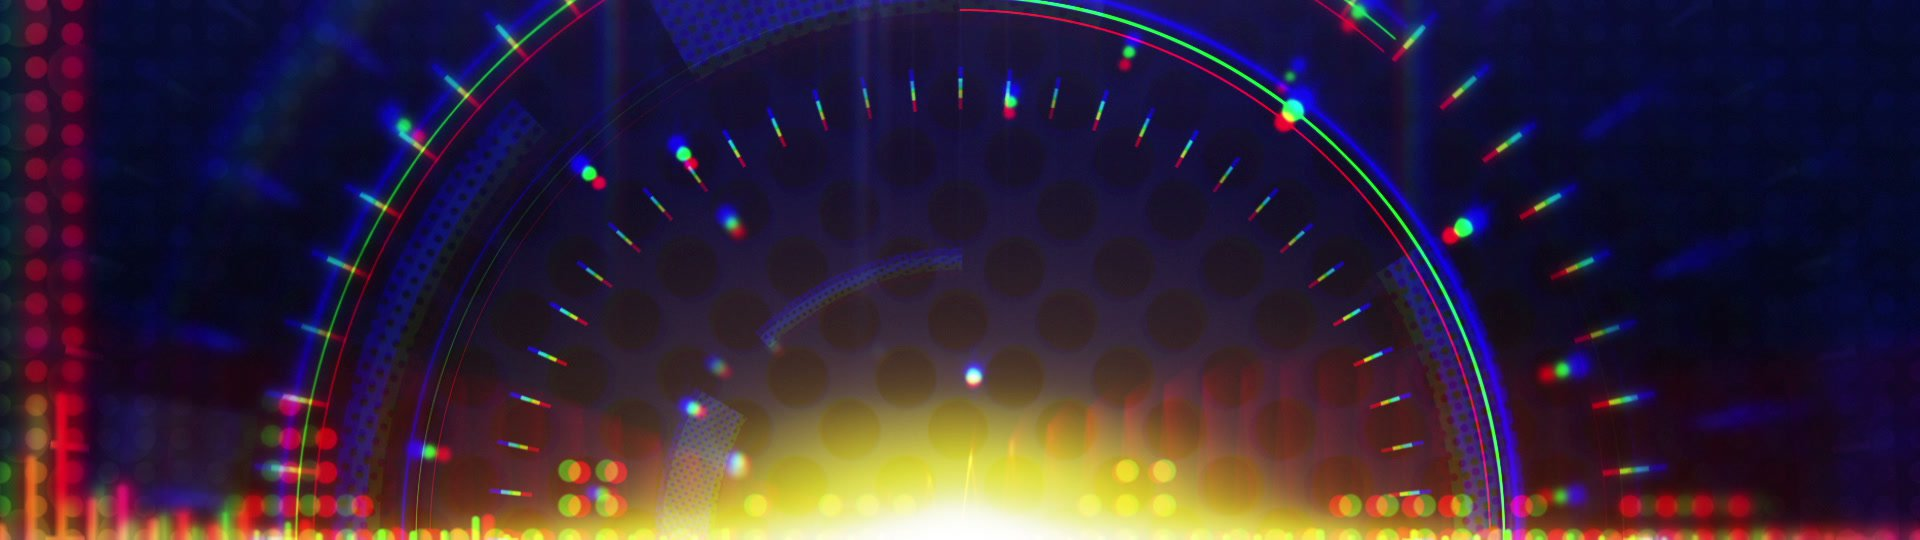 Sine waves orange blue technology loop background | orange sine waves on blue. computer generated seamless loop abstract technology motion background. HD 1080p  - ID:17288